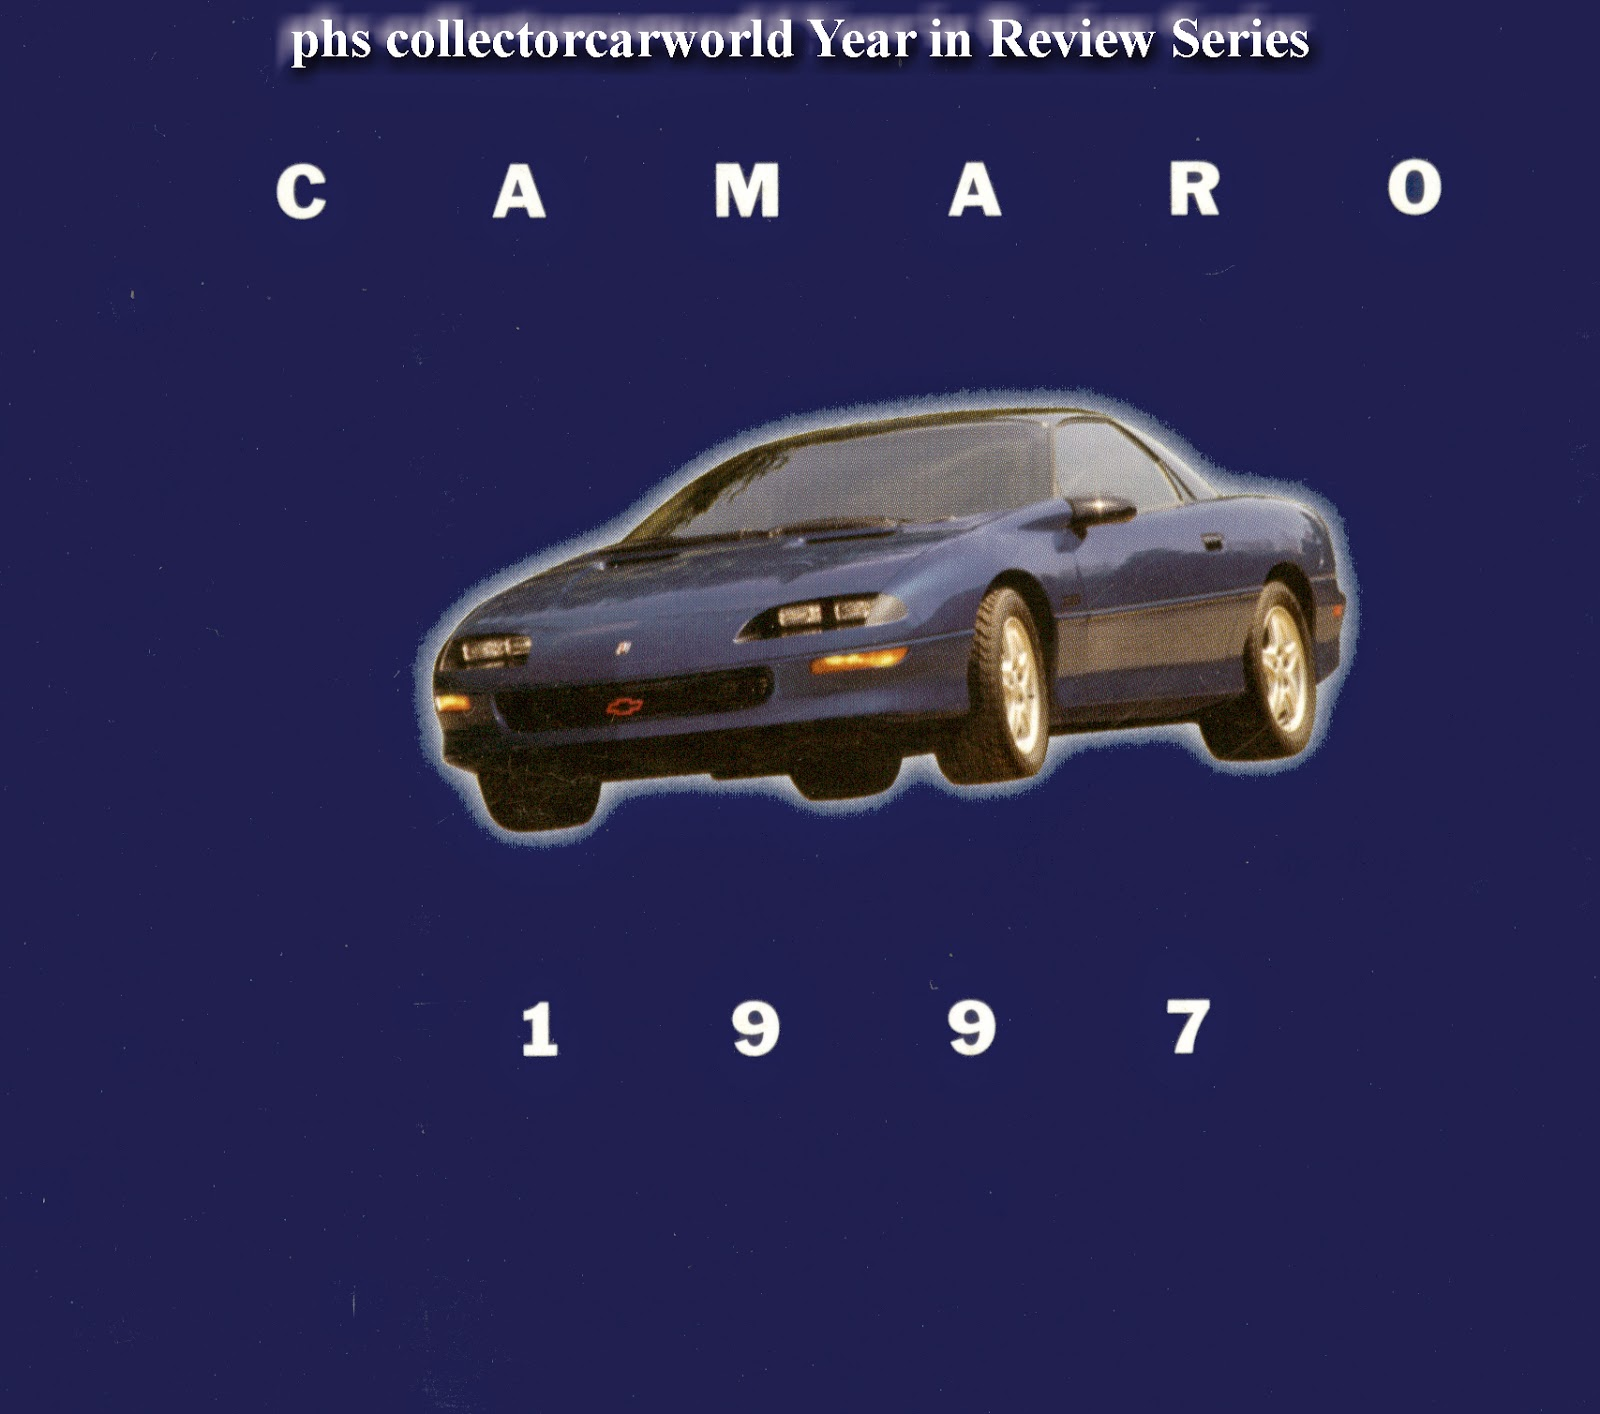 Year in Review 1997 Chevrolet Camaro Z28  phscollectorcarworld